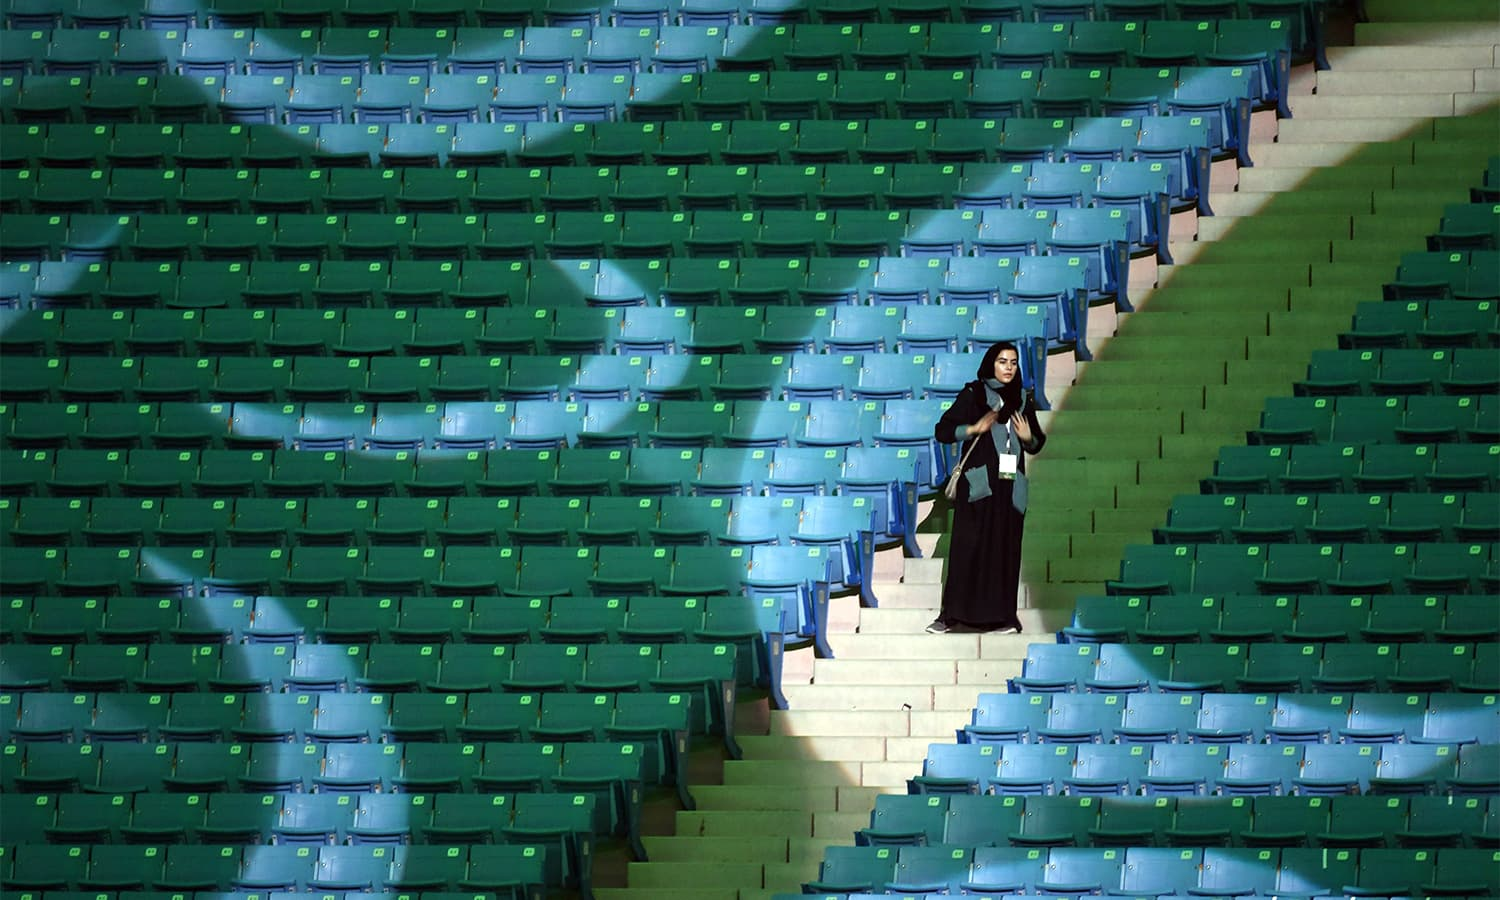 A Saudi woman arrives at a stadium to attend an event in the capital Riyadh. — AFP